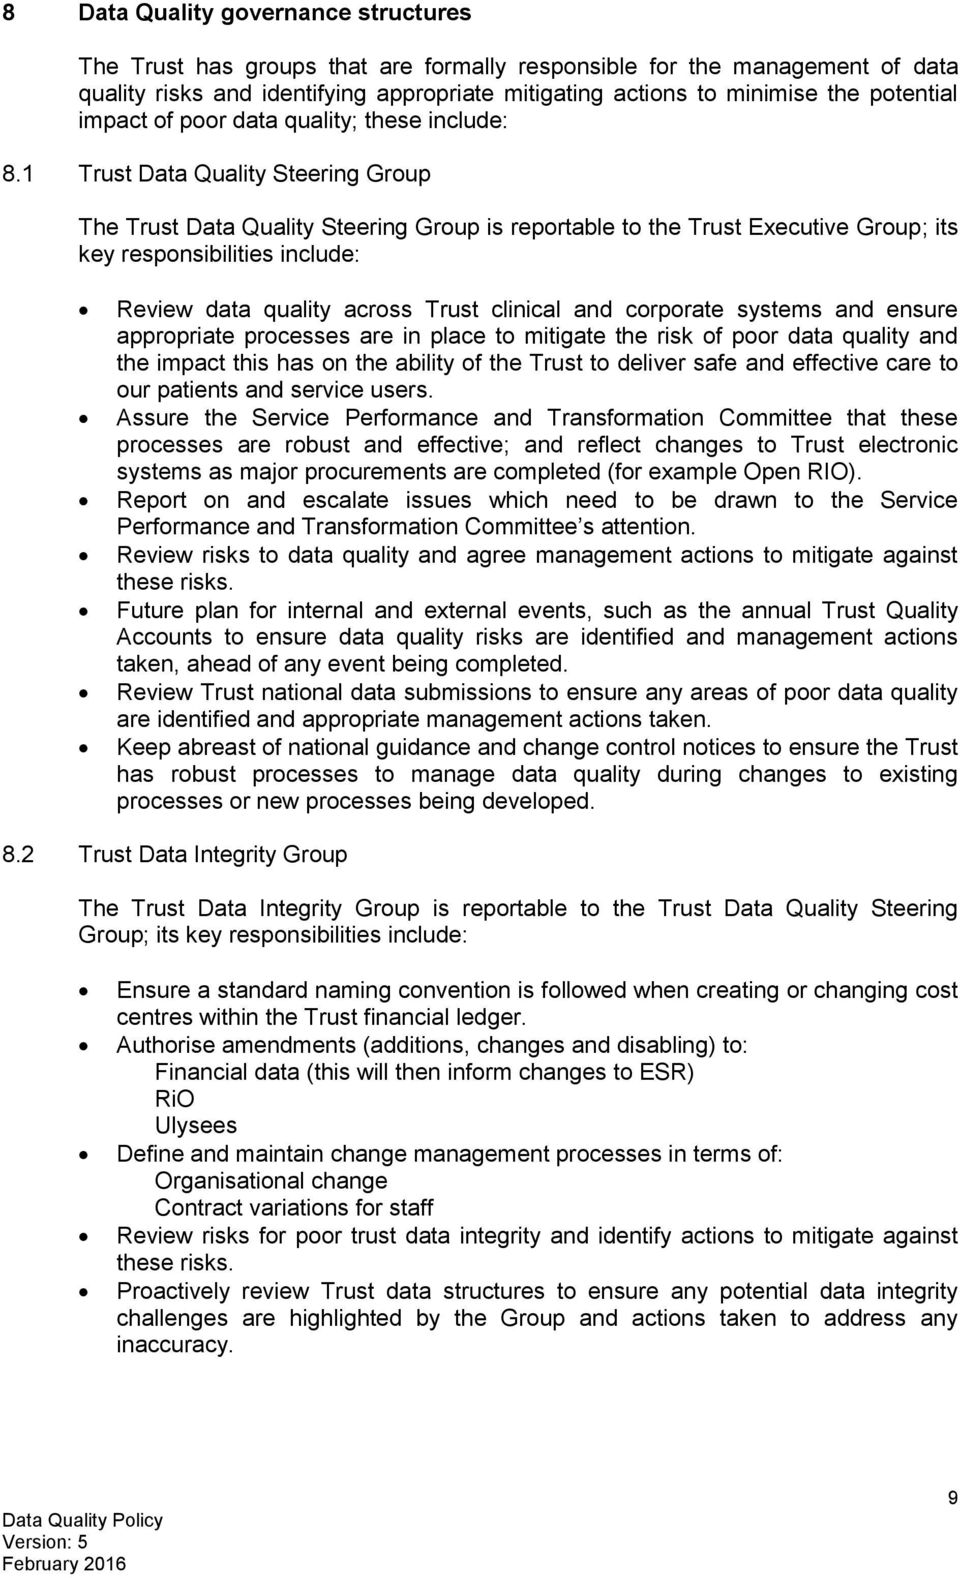 1 Trust Data Quality Steering Group The Trust Data Quality Steering Group is reportable to the Trust Executive Group; its key responsibilities include: Review data quality across Trust clinical and